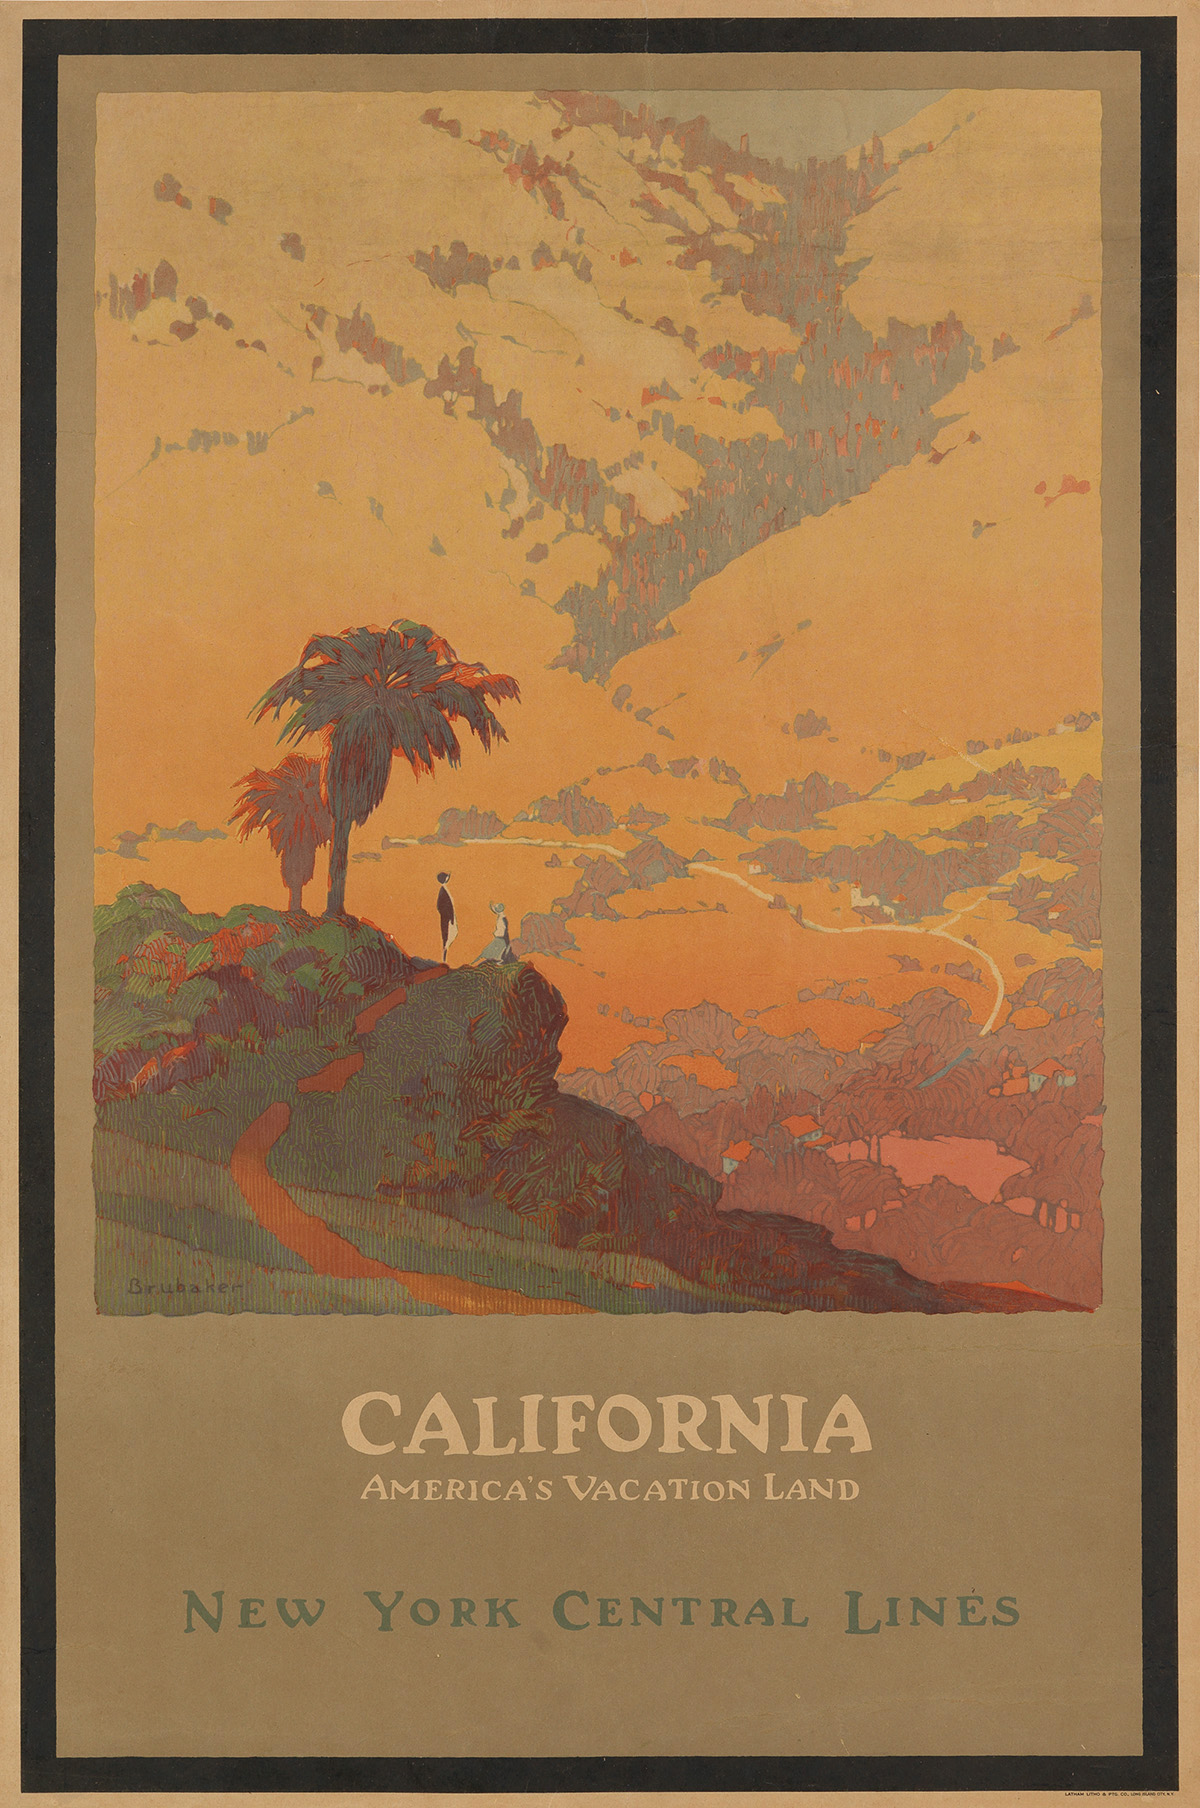 Jon O. Brubaker (1875-?).  CALIFORNIA / AMERICAS VACATION LAND / NEW YORK CENTRAL LINES. 1925.